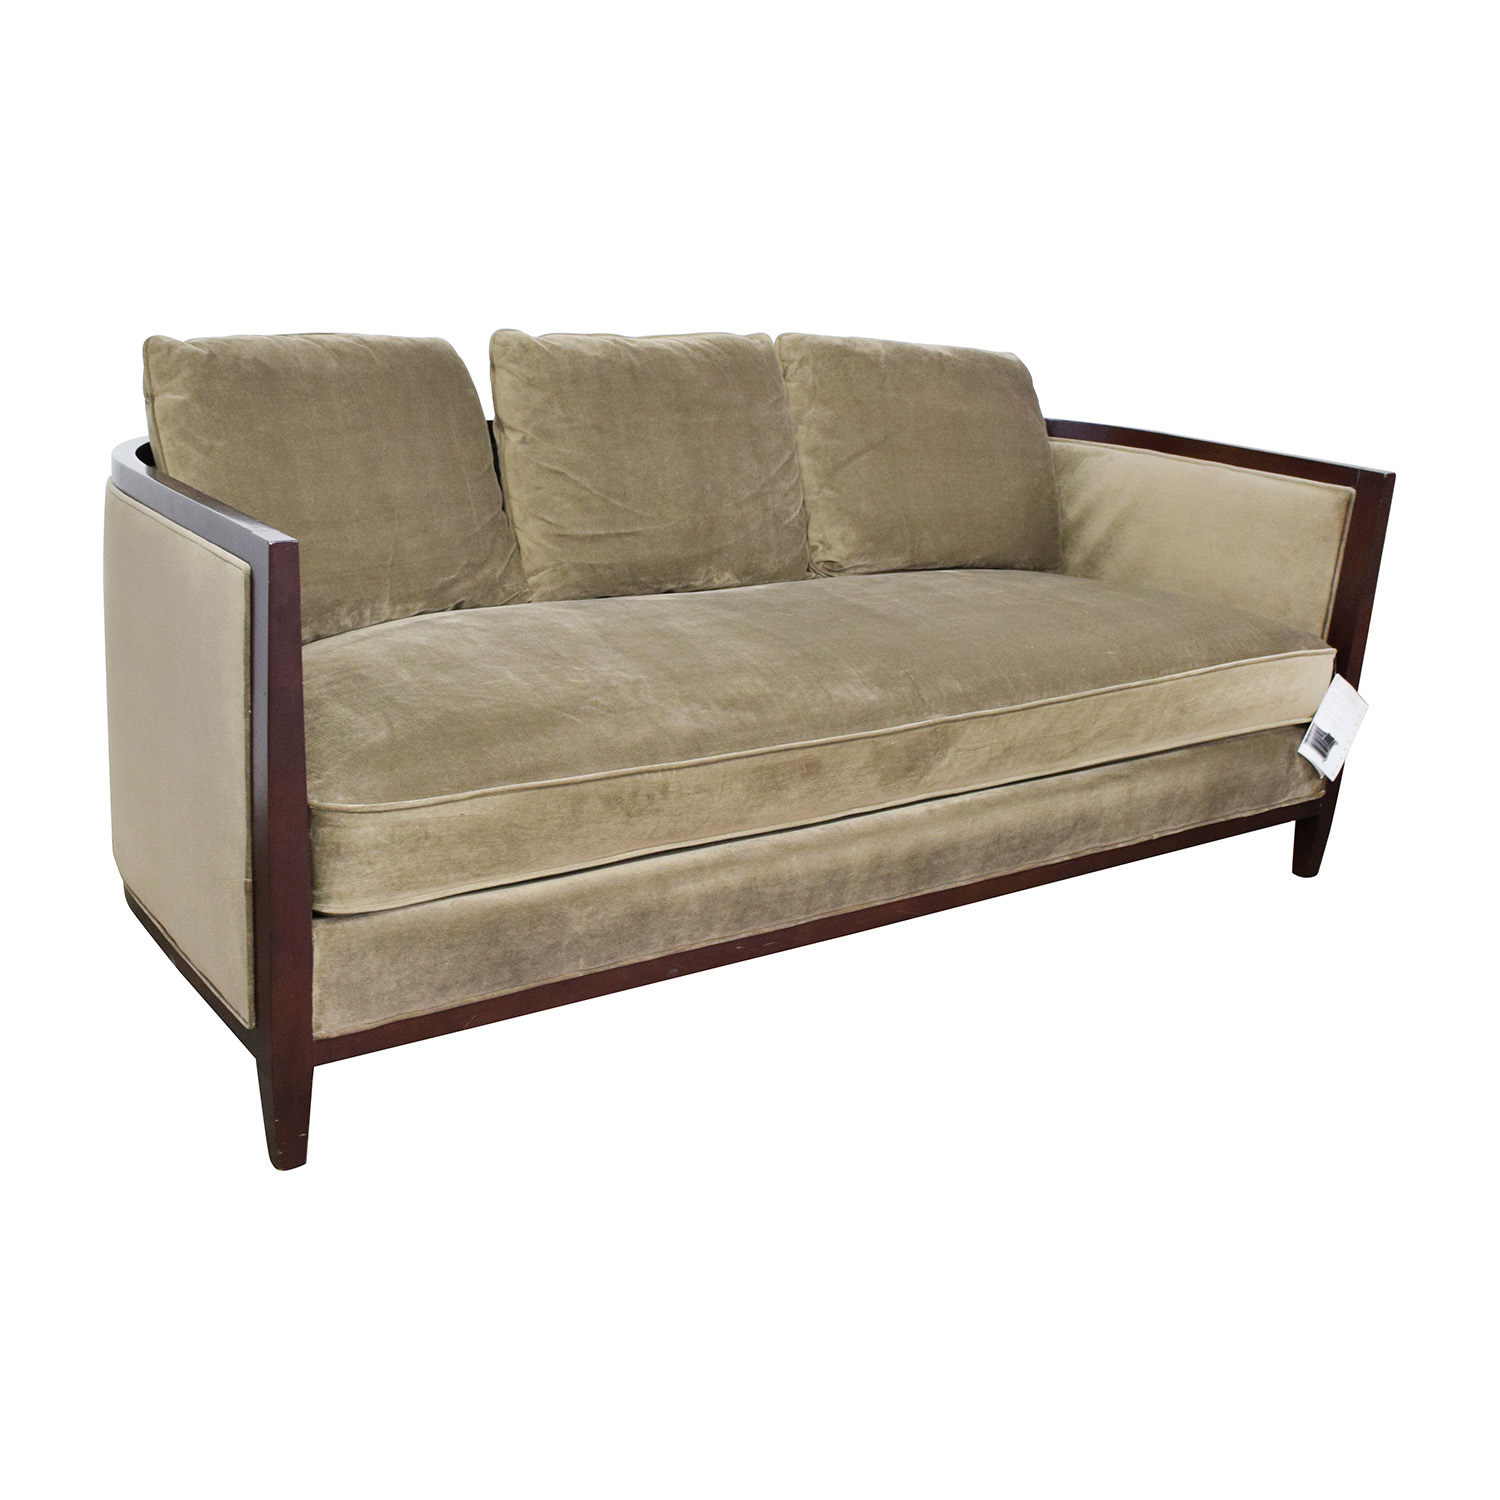 Bernhardt sofa item sofa beckett sofa bernhardt for Bernhardt furniture